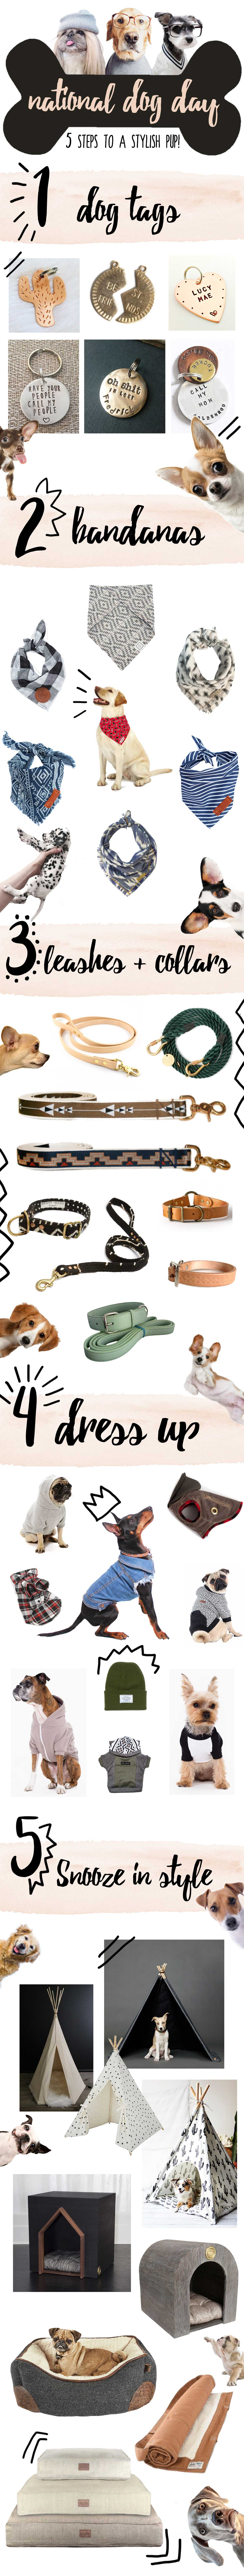 national_dog_day_dog_accessories